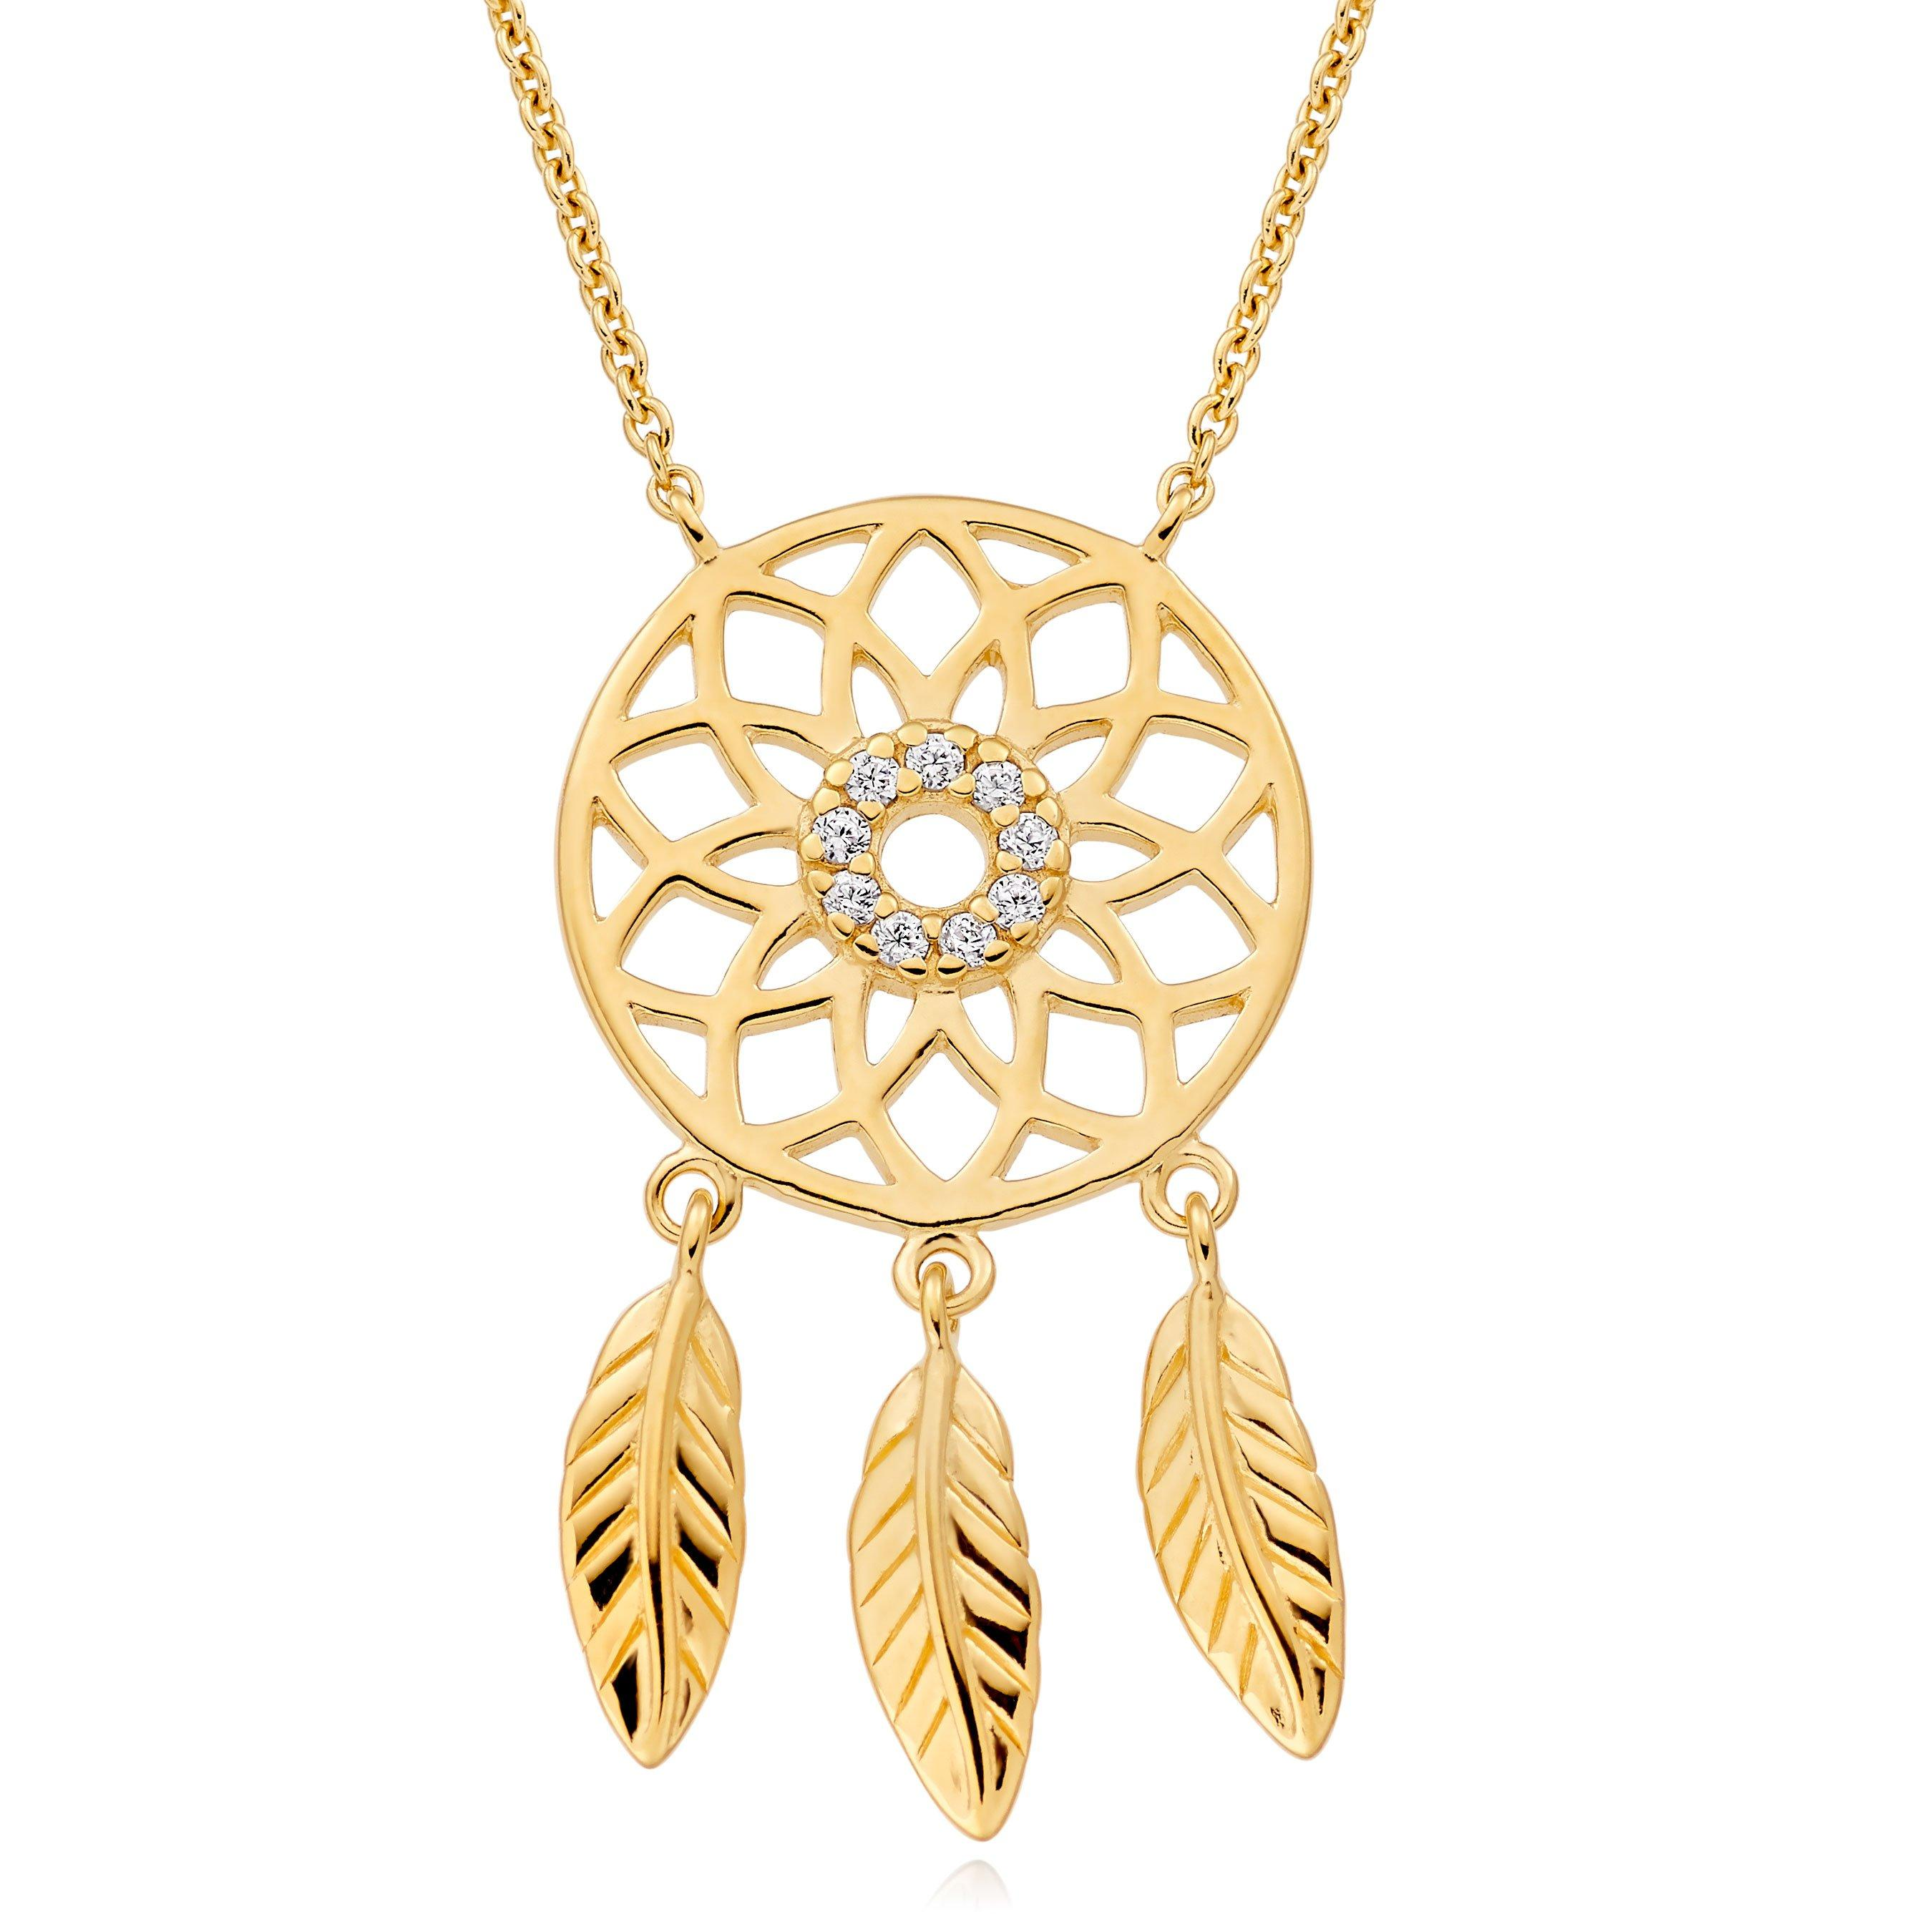 Silver 18ct Gold Plated Cubic Zirconia Dream Catcher Necklace